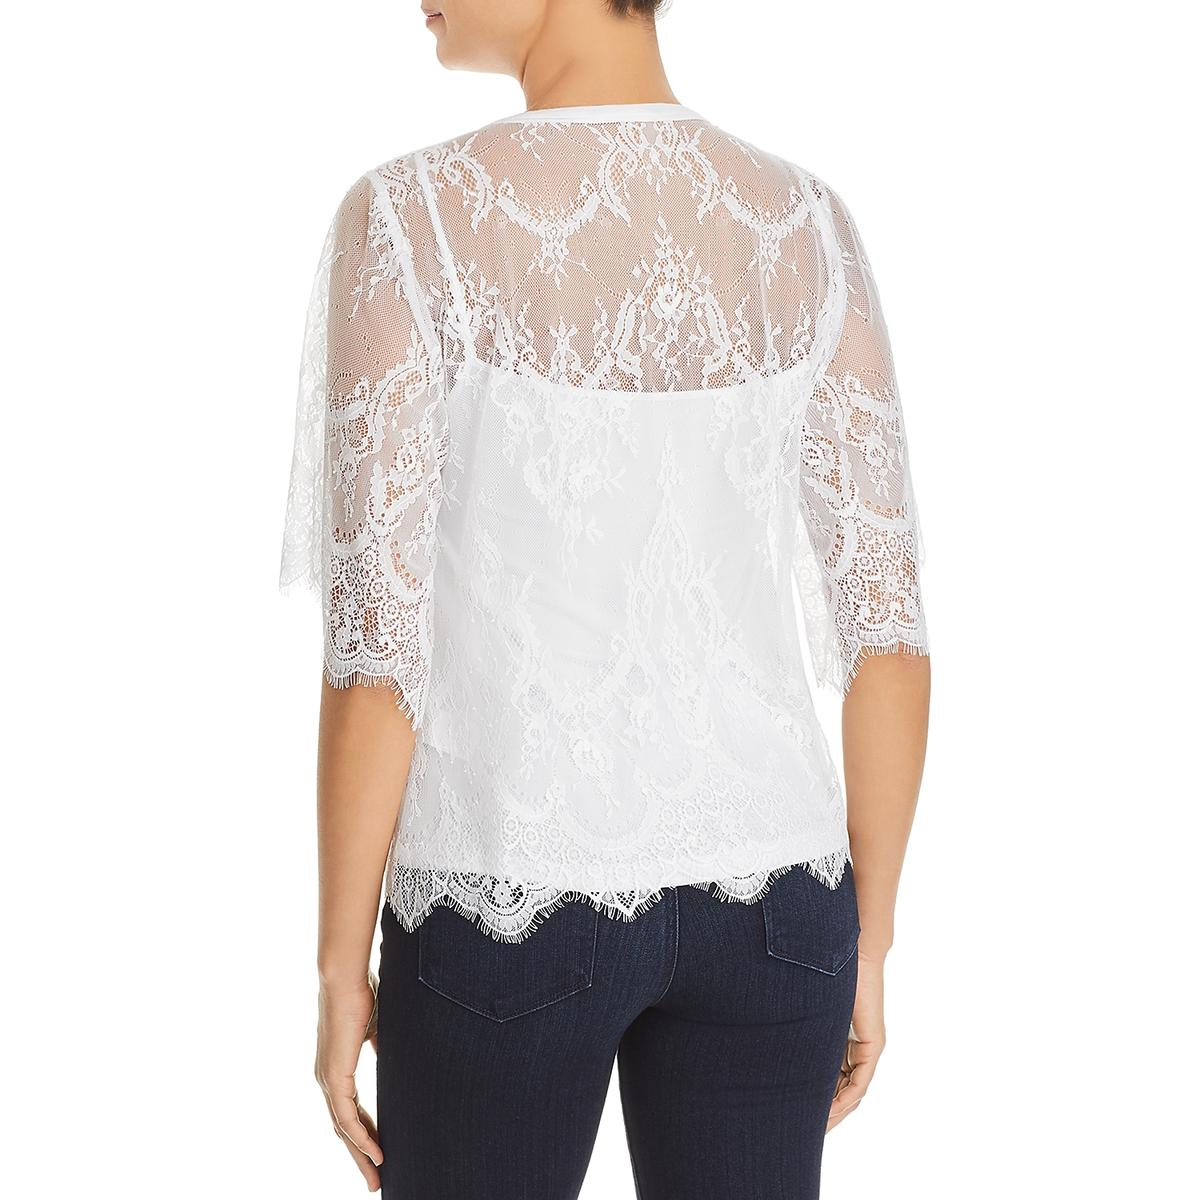 f94efe9a990c8 Le Gali Womens Trista White Lace Fringe Elbow Sleeves Blouse Top L ...